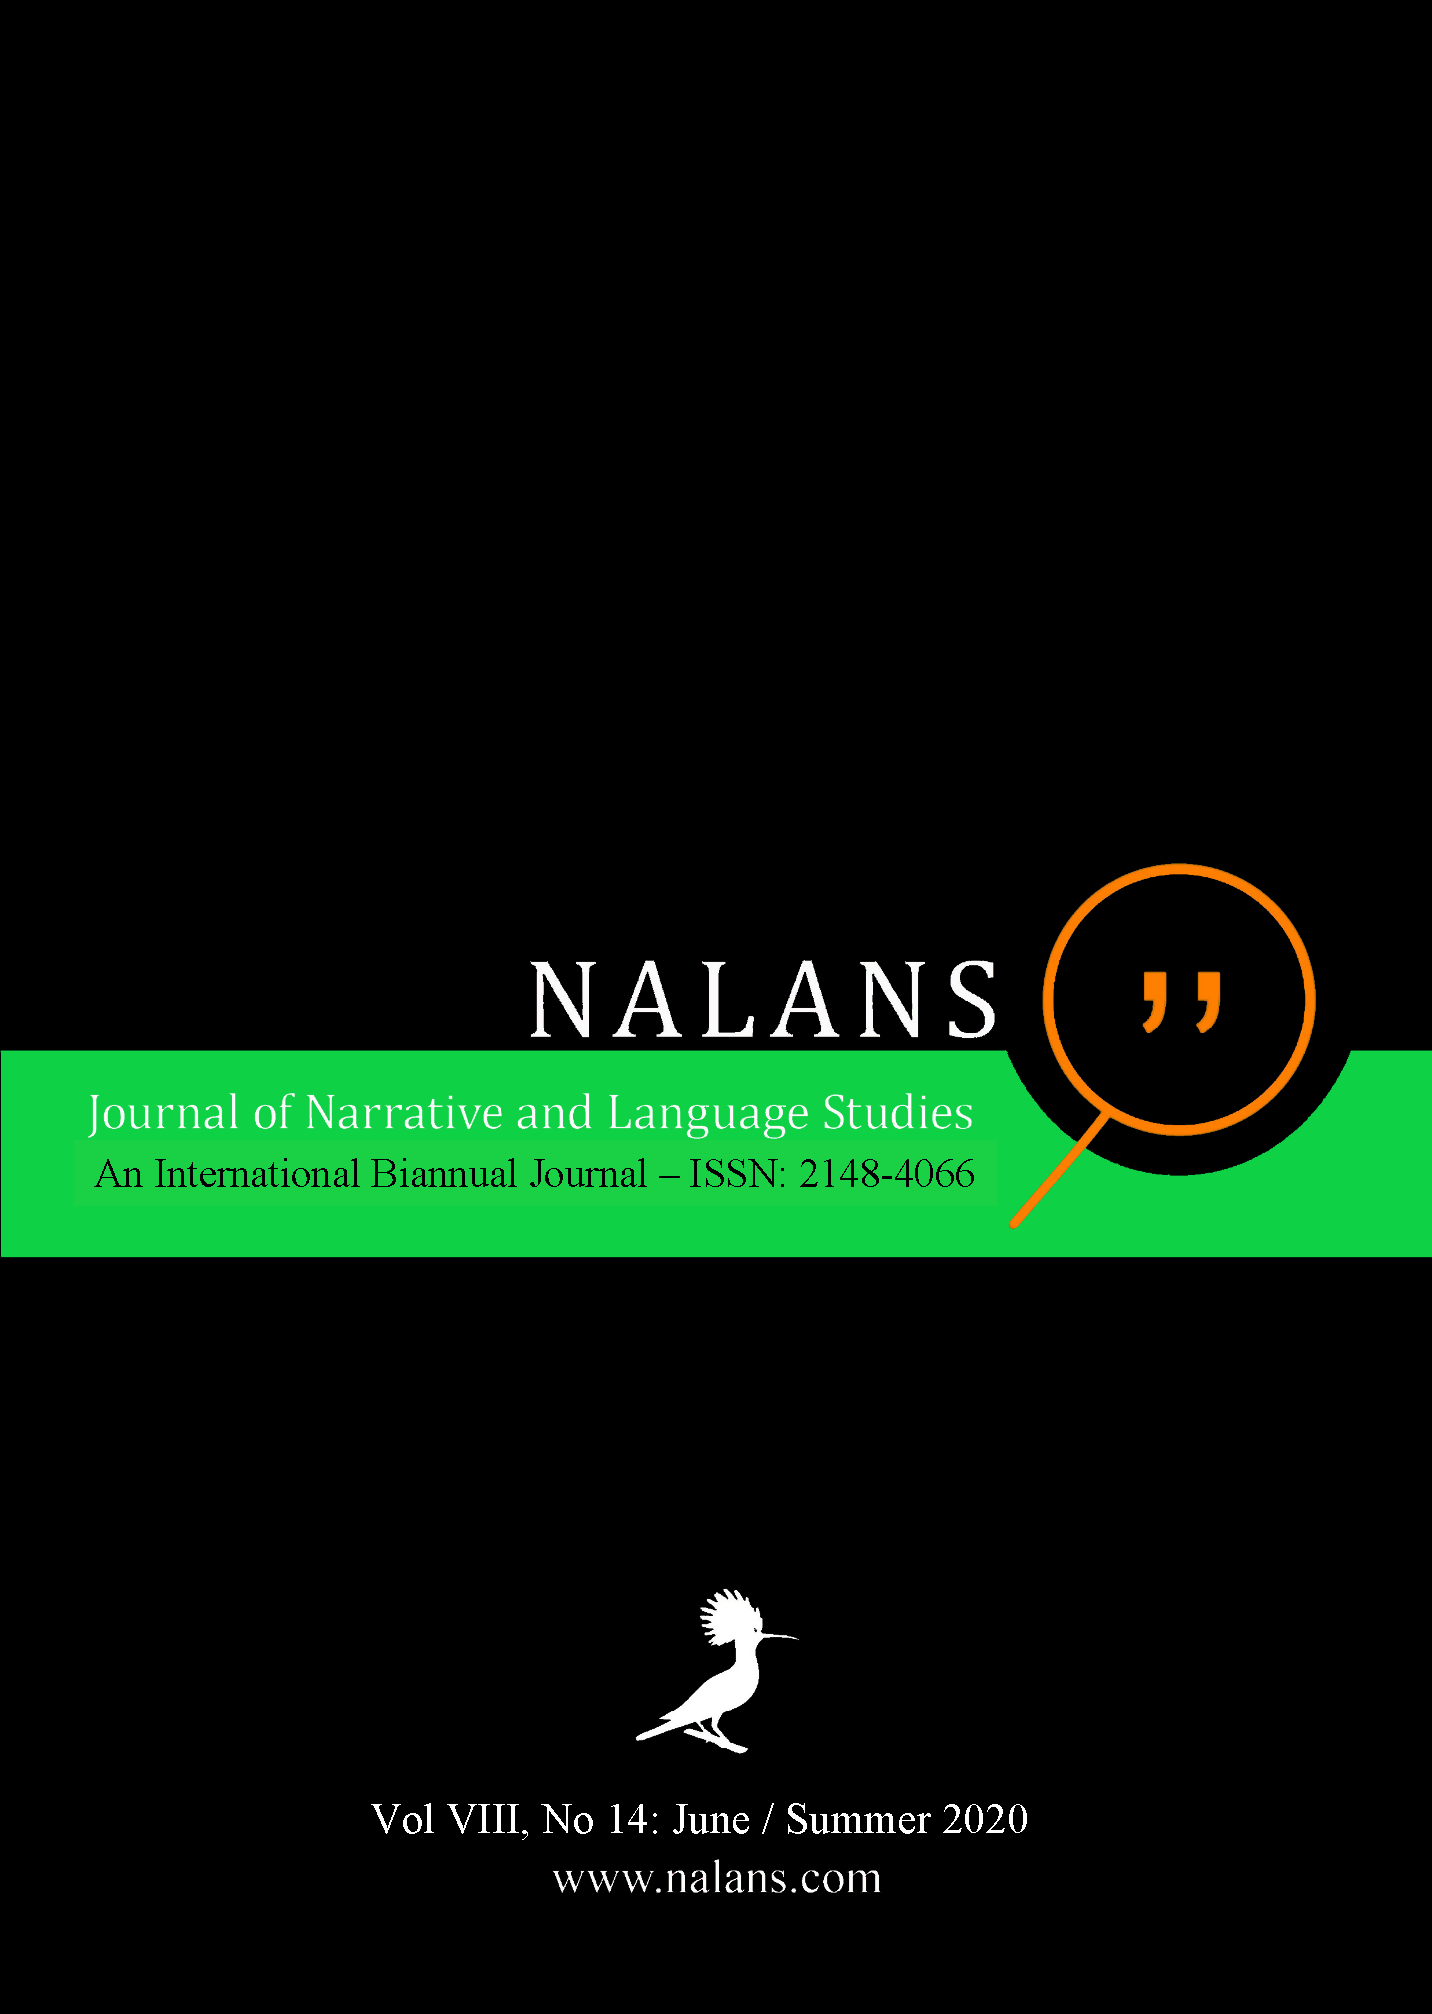 Journal of Narrative and Language Studies (NALANS)